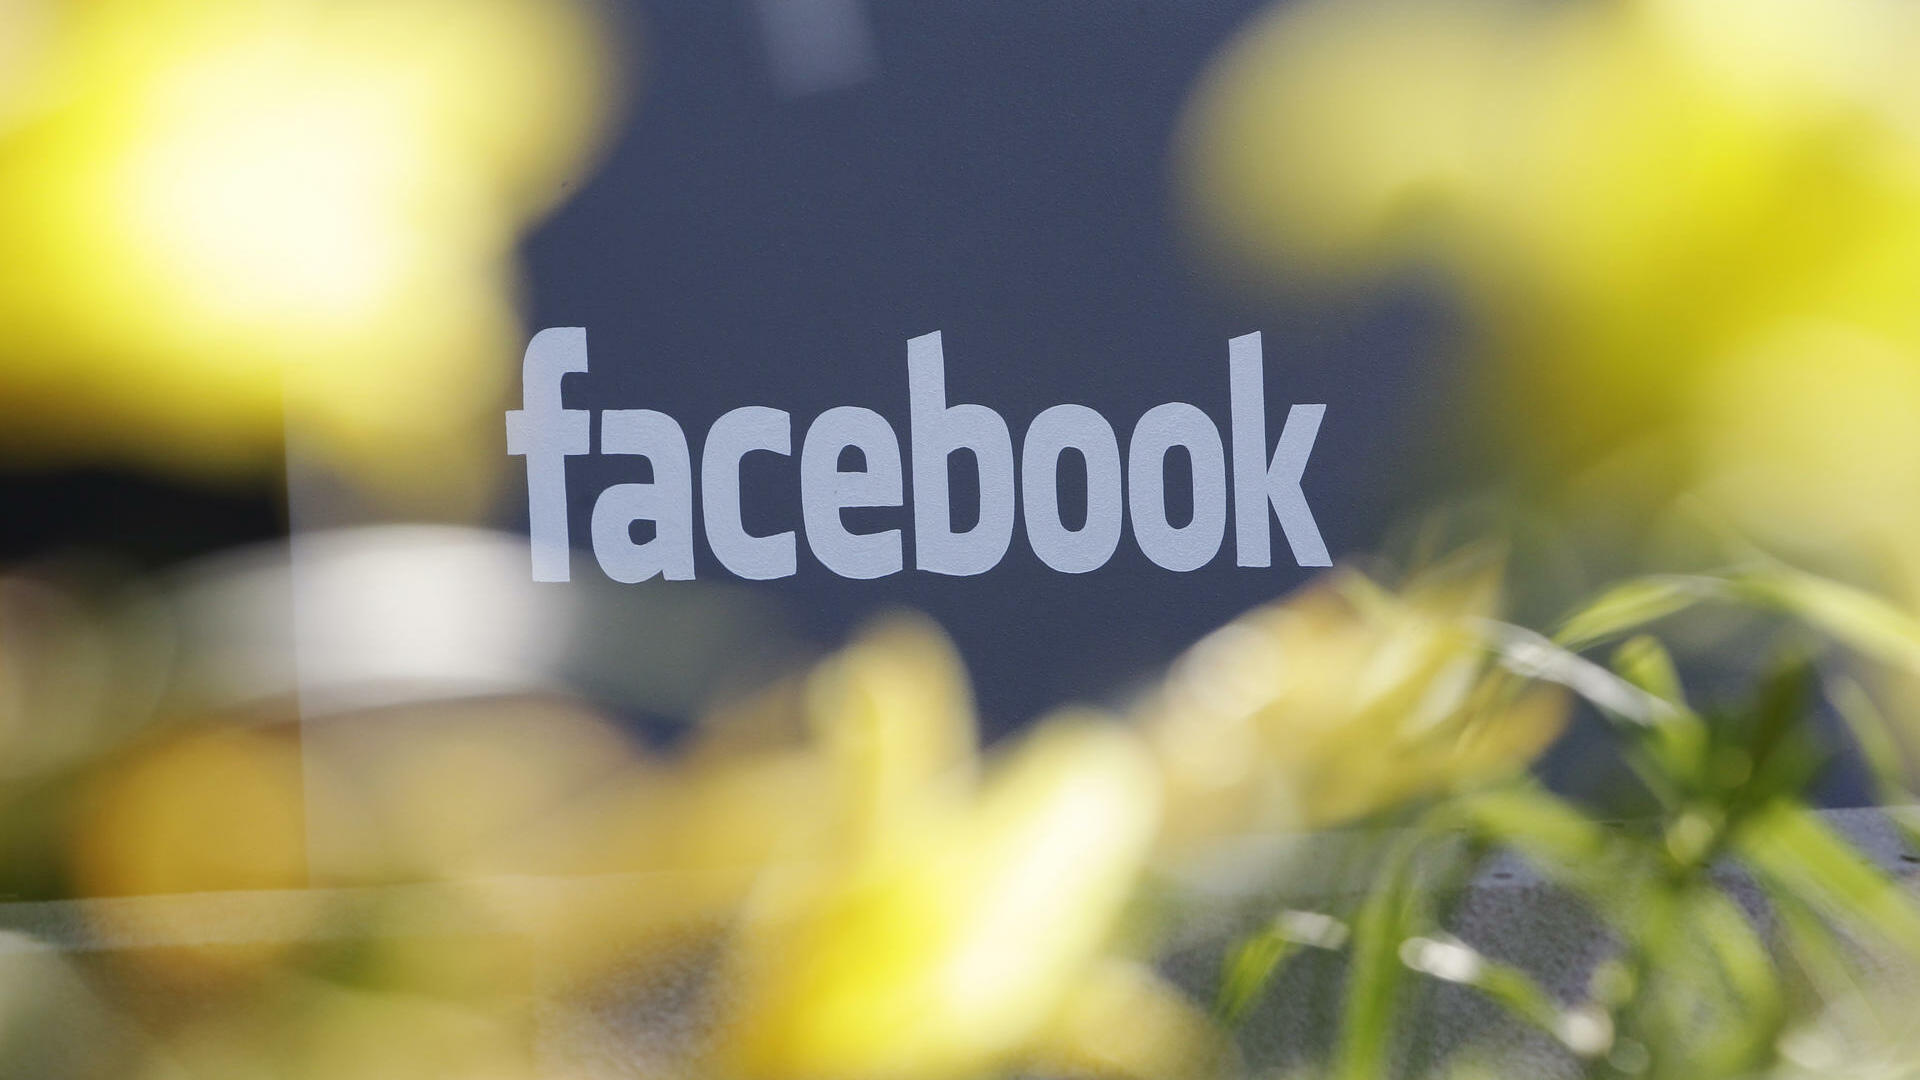 Facebook's headquarters behind flowers in Menlo Park Quelle: dapd